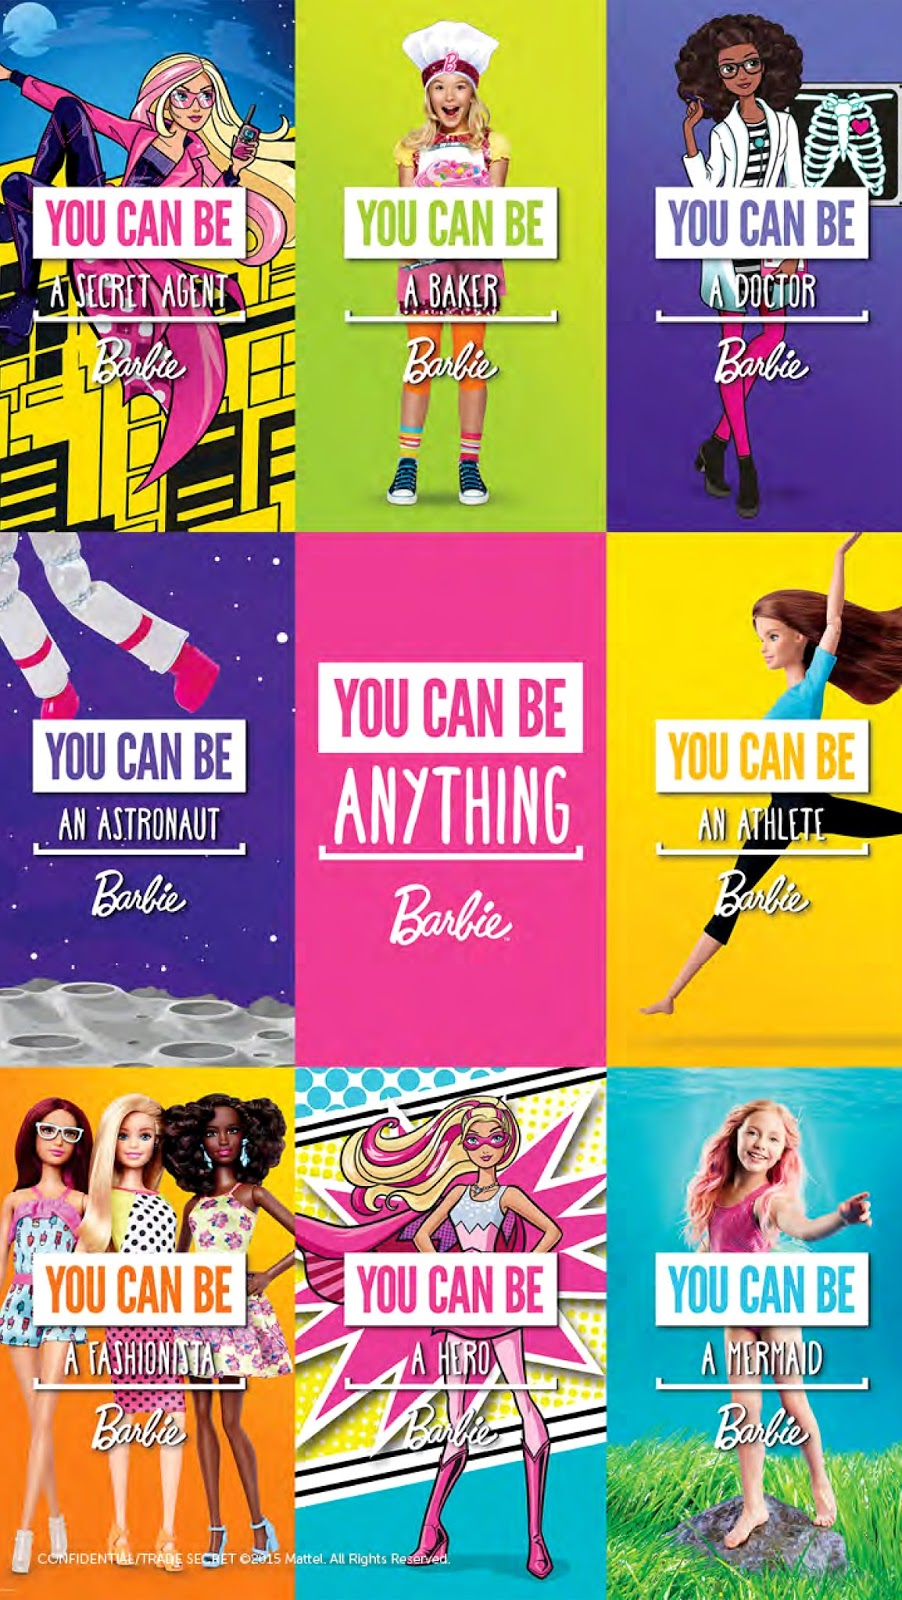 Shopgirl Jen: BARBIE'S YOU CAN BE ANYTHING CAMPAIGN